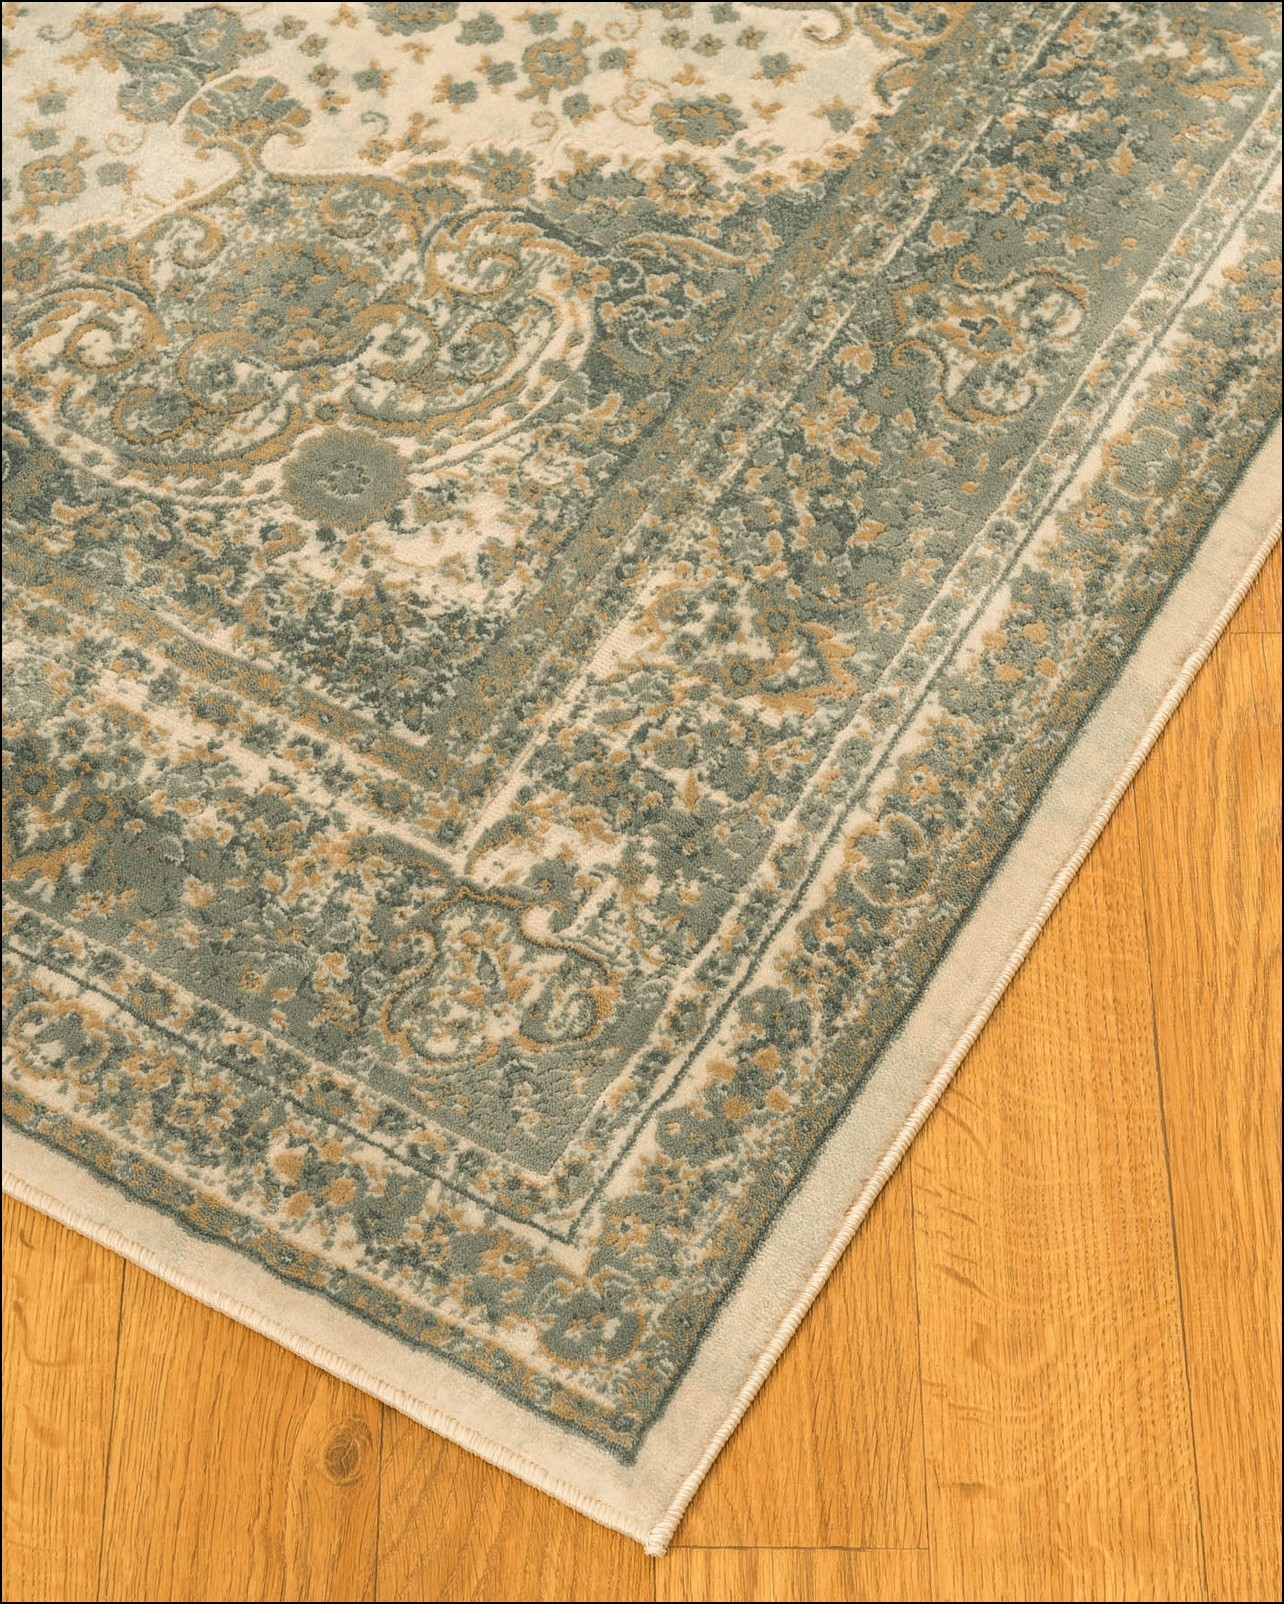 Permalink to Vintage Looking Bathroom Rugs